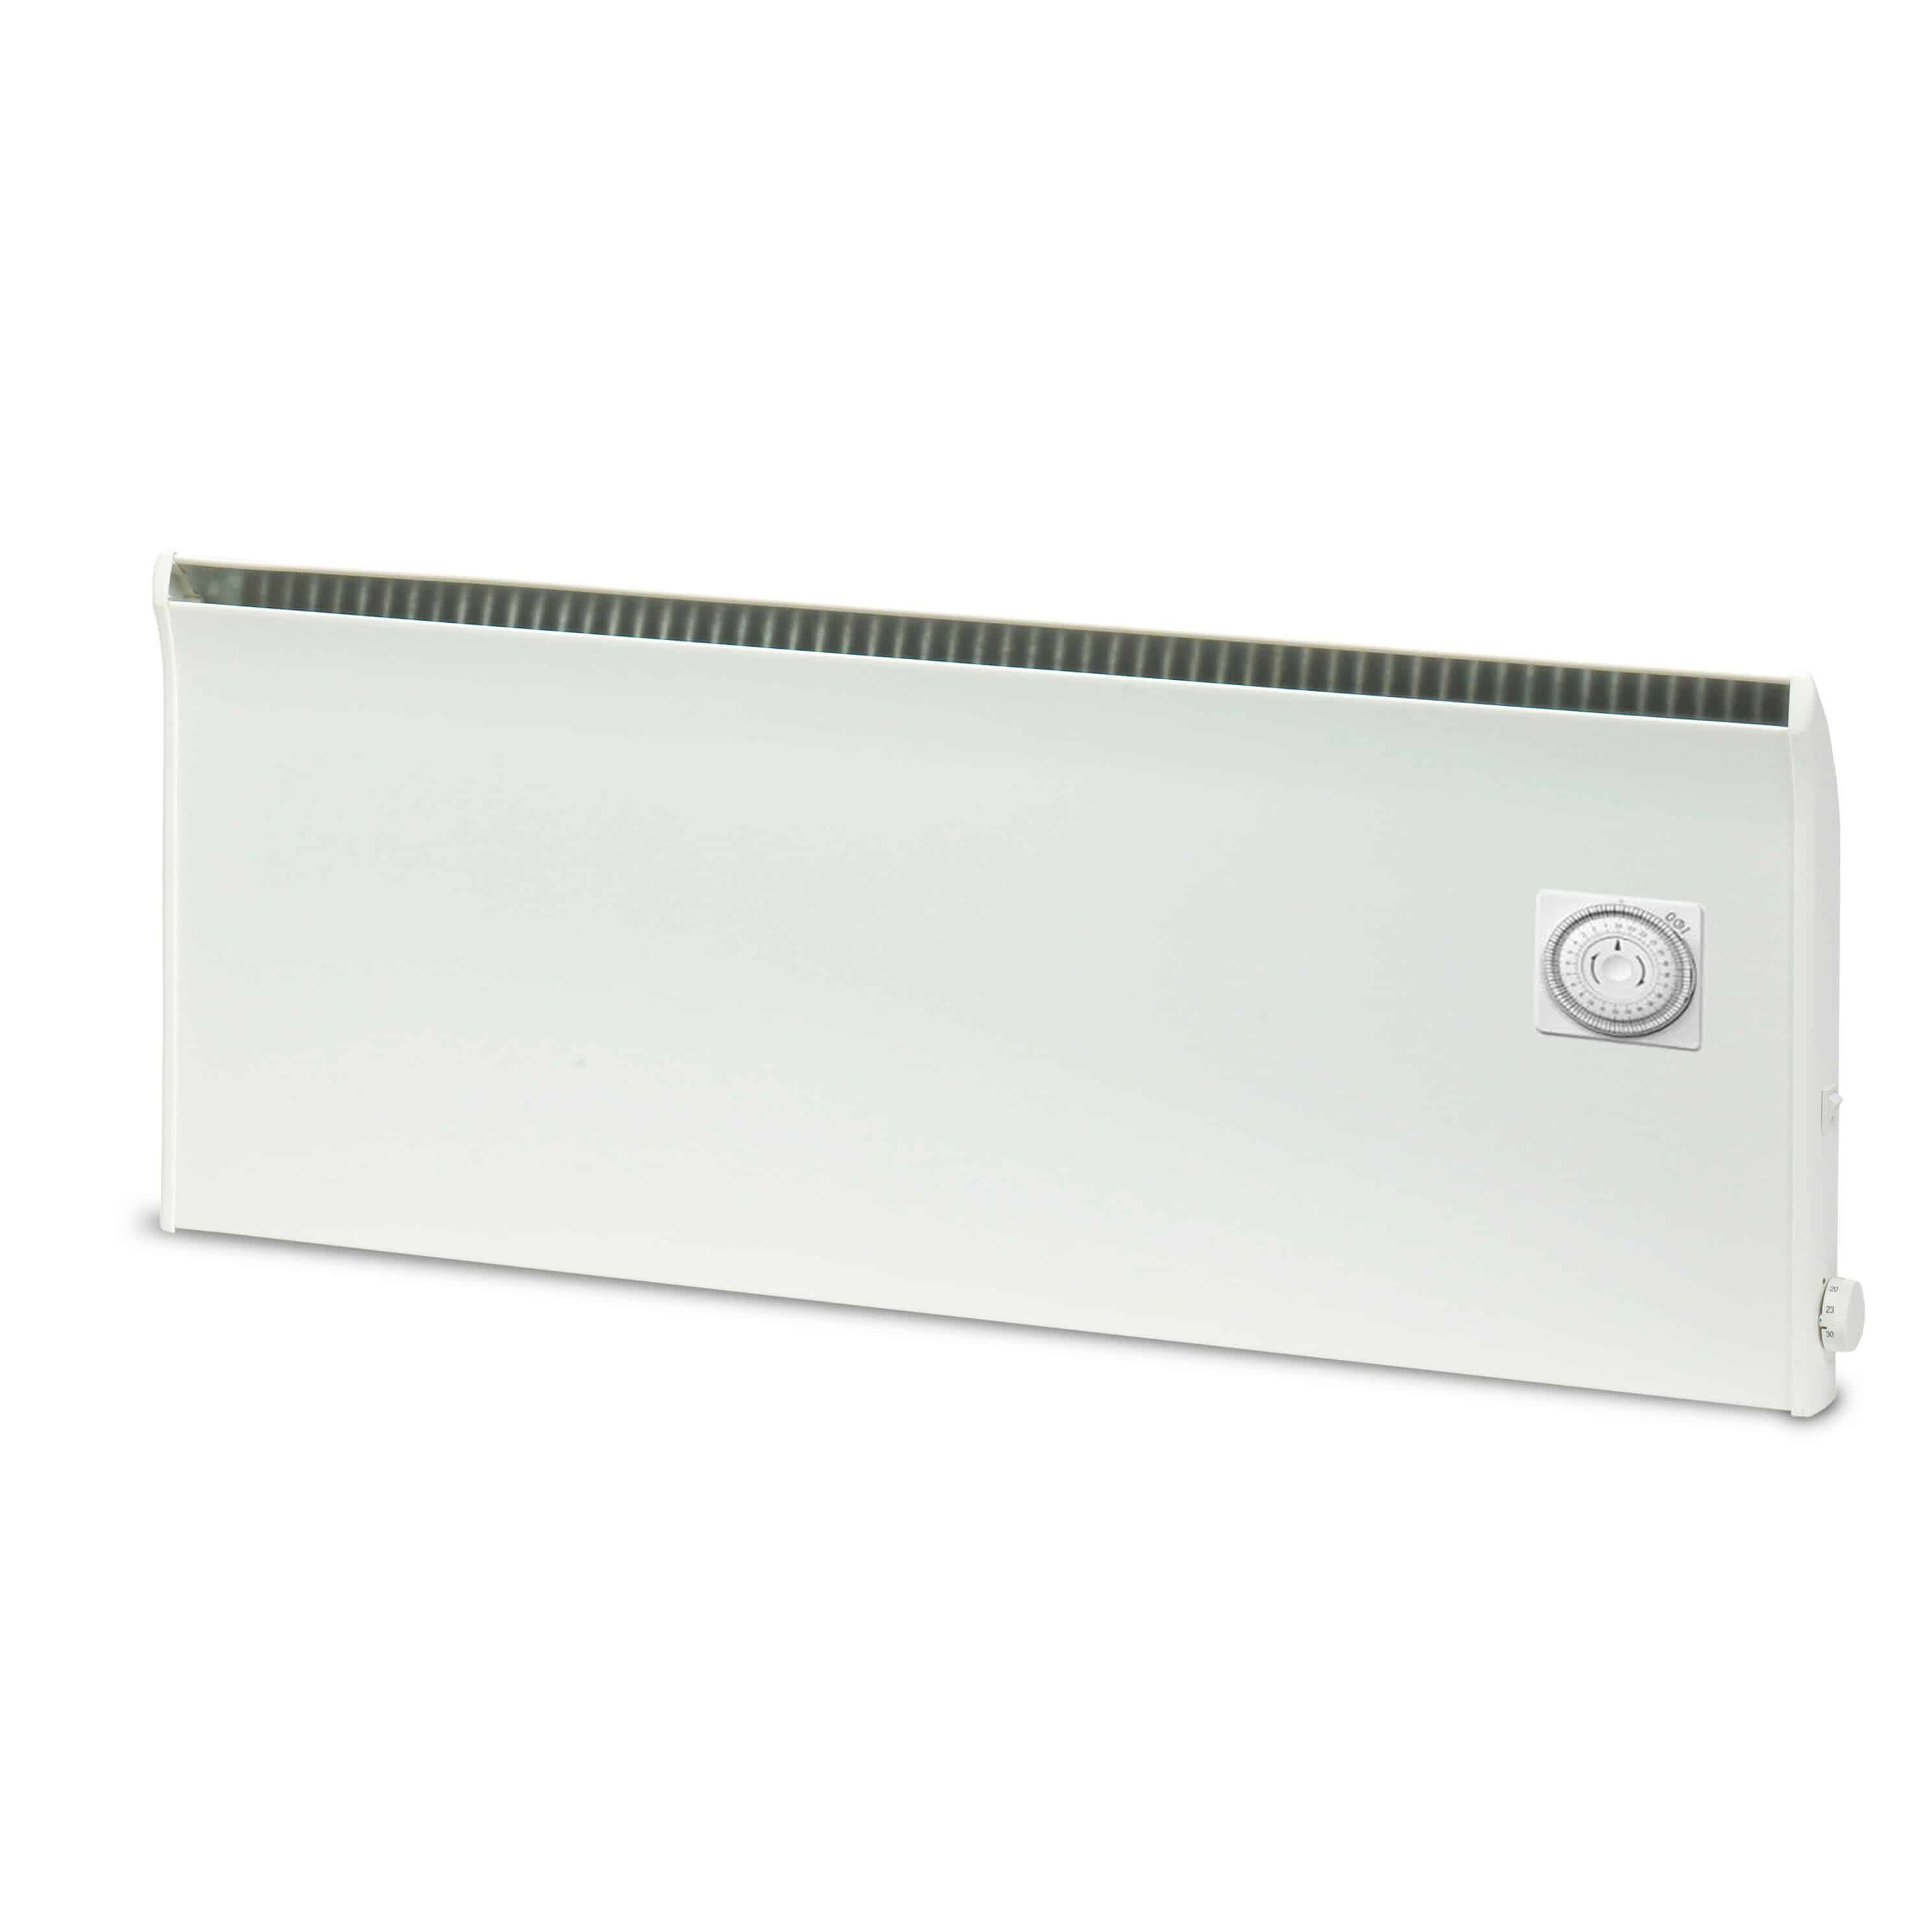 Slimline electric heaters wall mounted - Norel Pm Electric Panel Heater Convector Radiator Wall Mounted Built In Timer